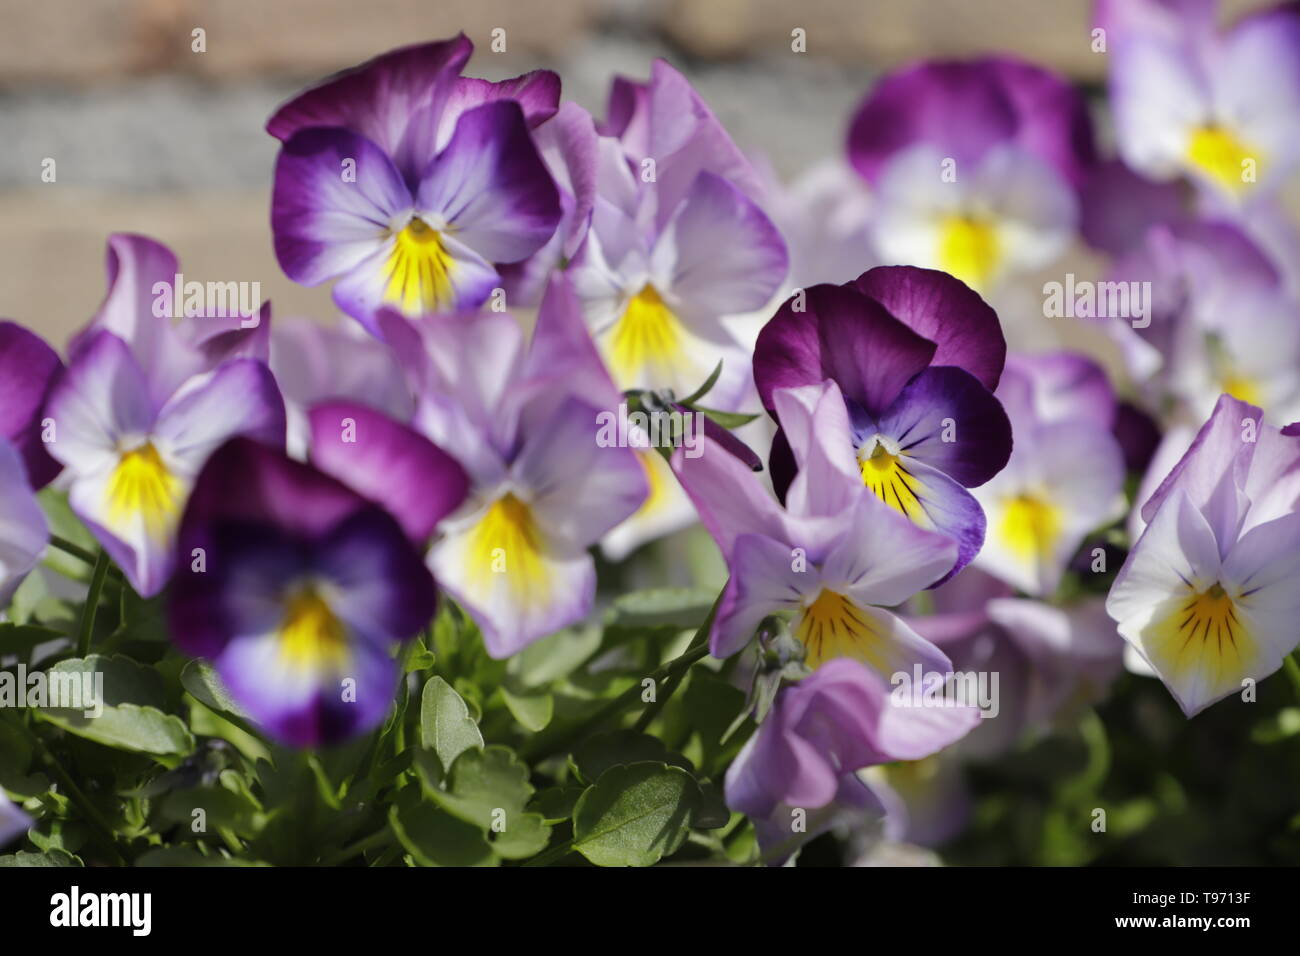 close up of pansy or viola tricolor flowers - Stock Image